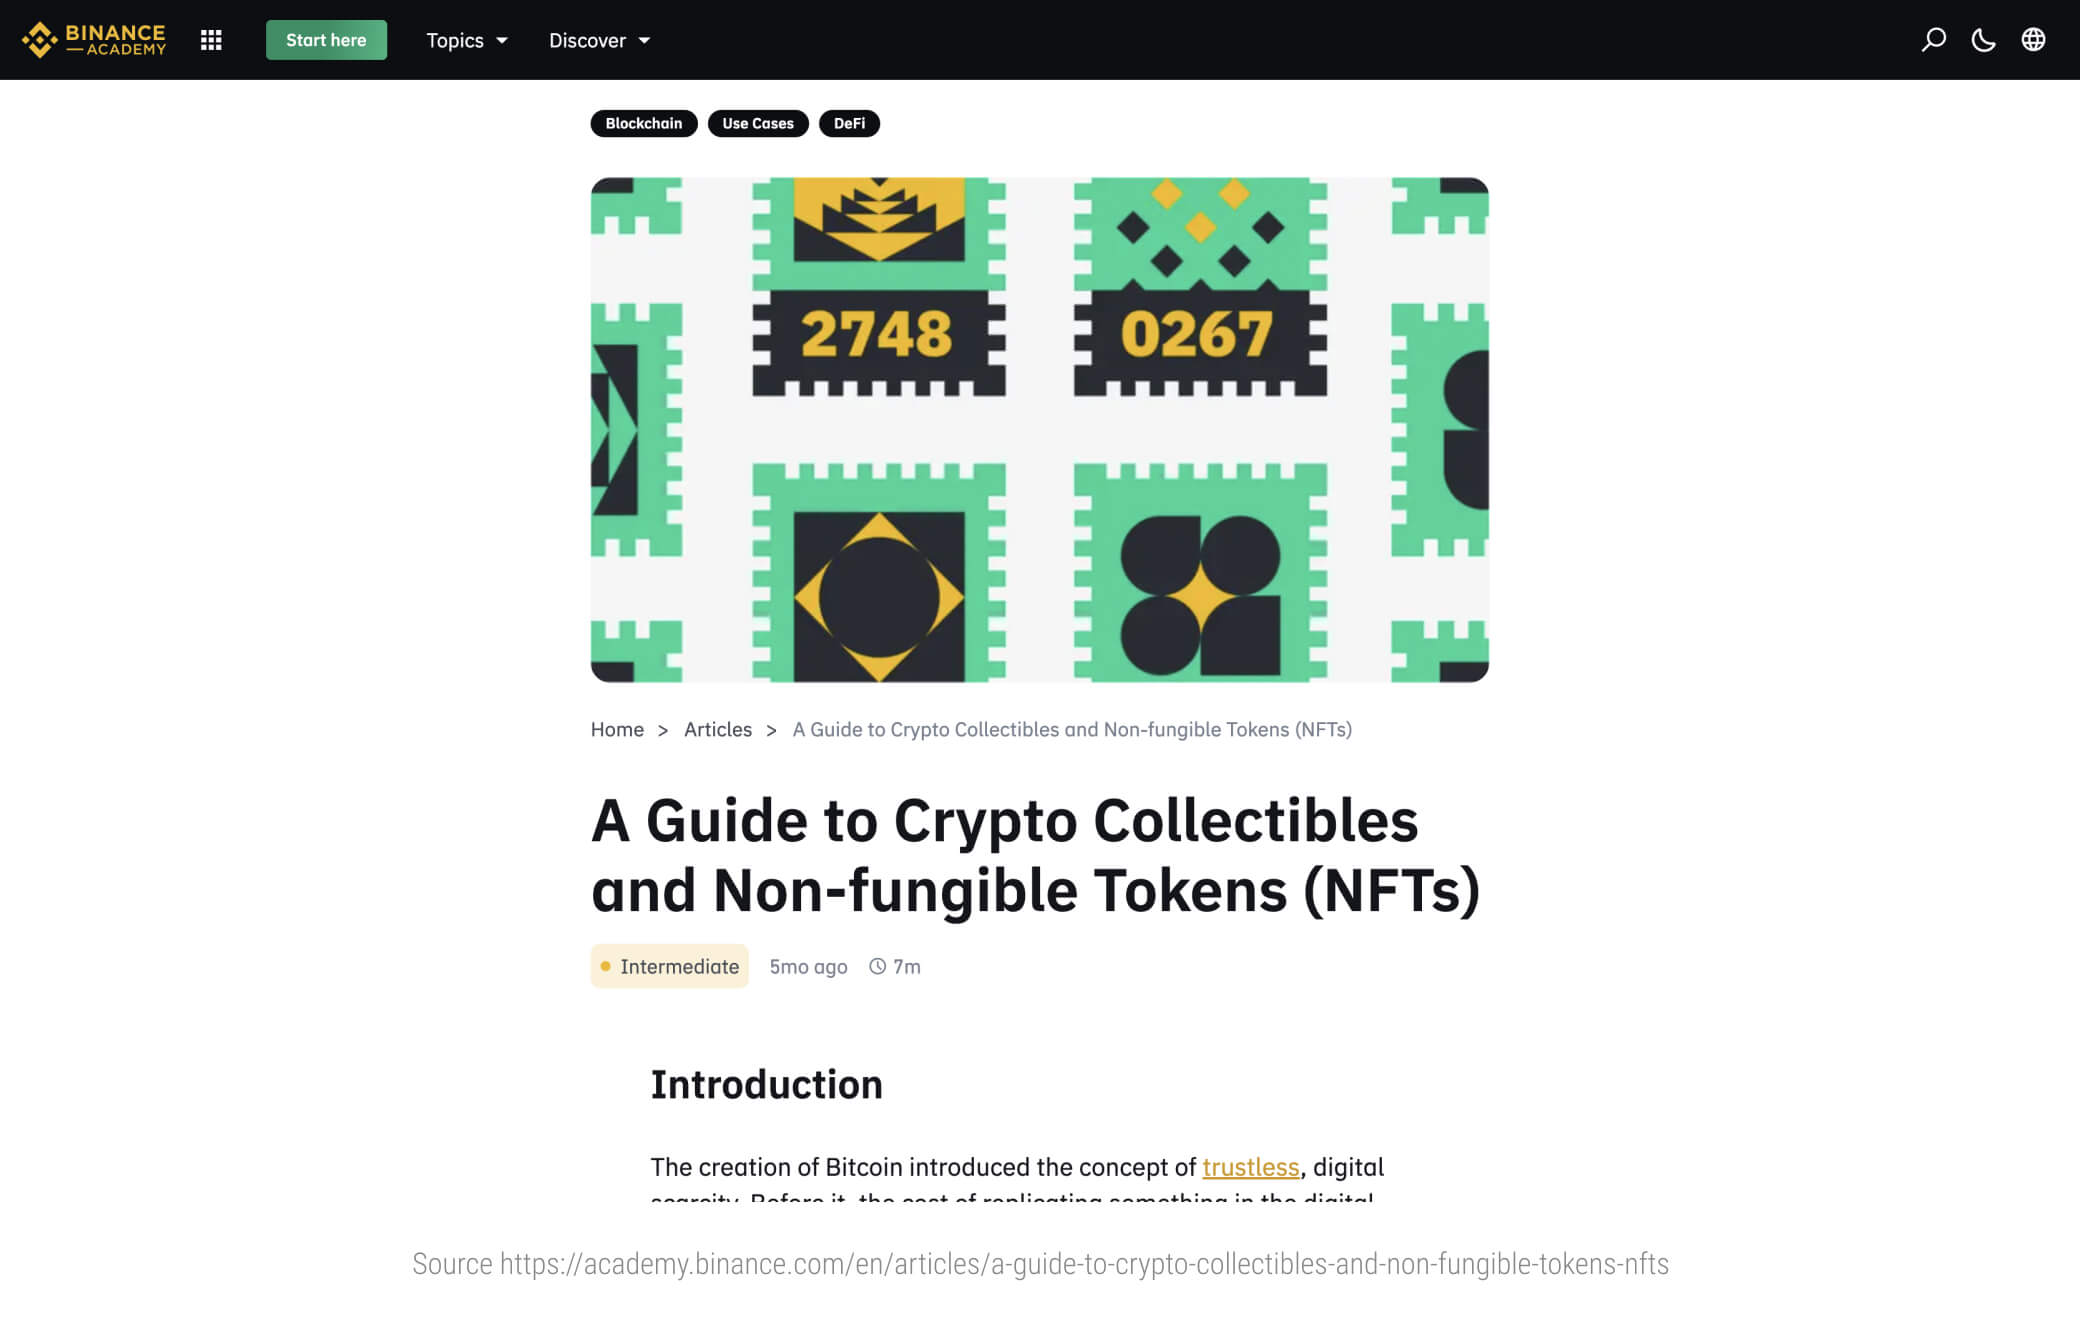 A-Guide-to-Crypto-Collectibles-and-Non-fungible-Tokens--NFTs-